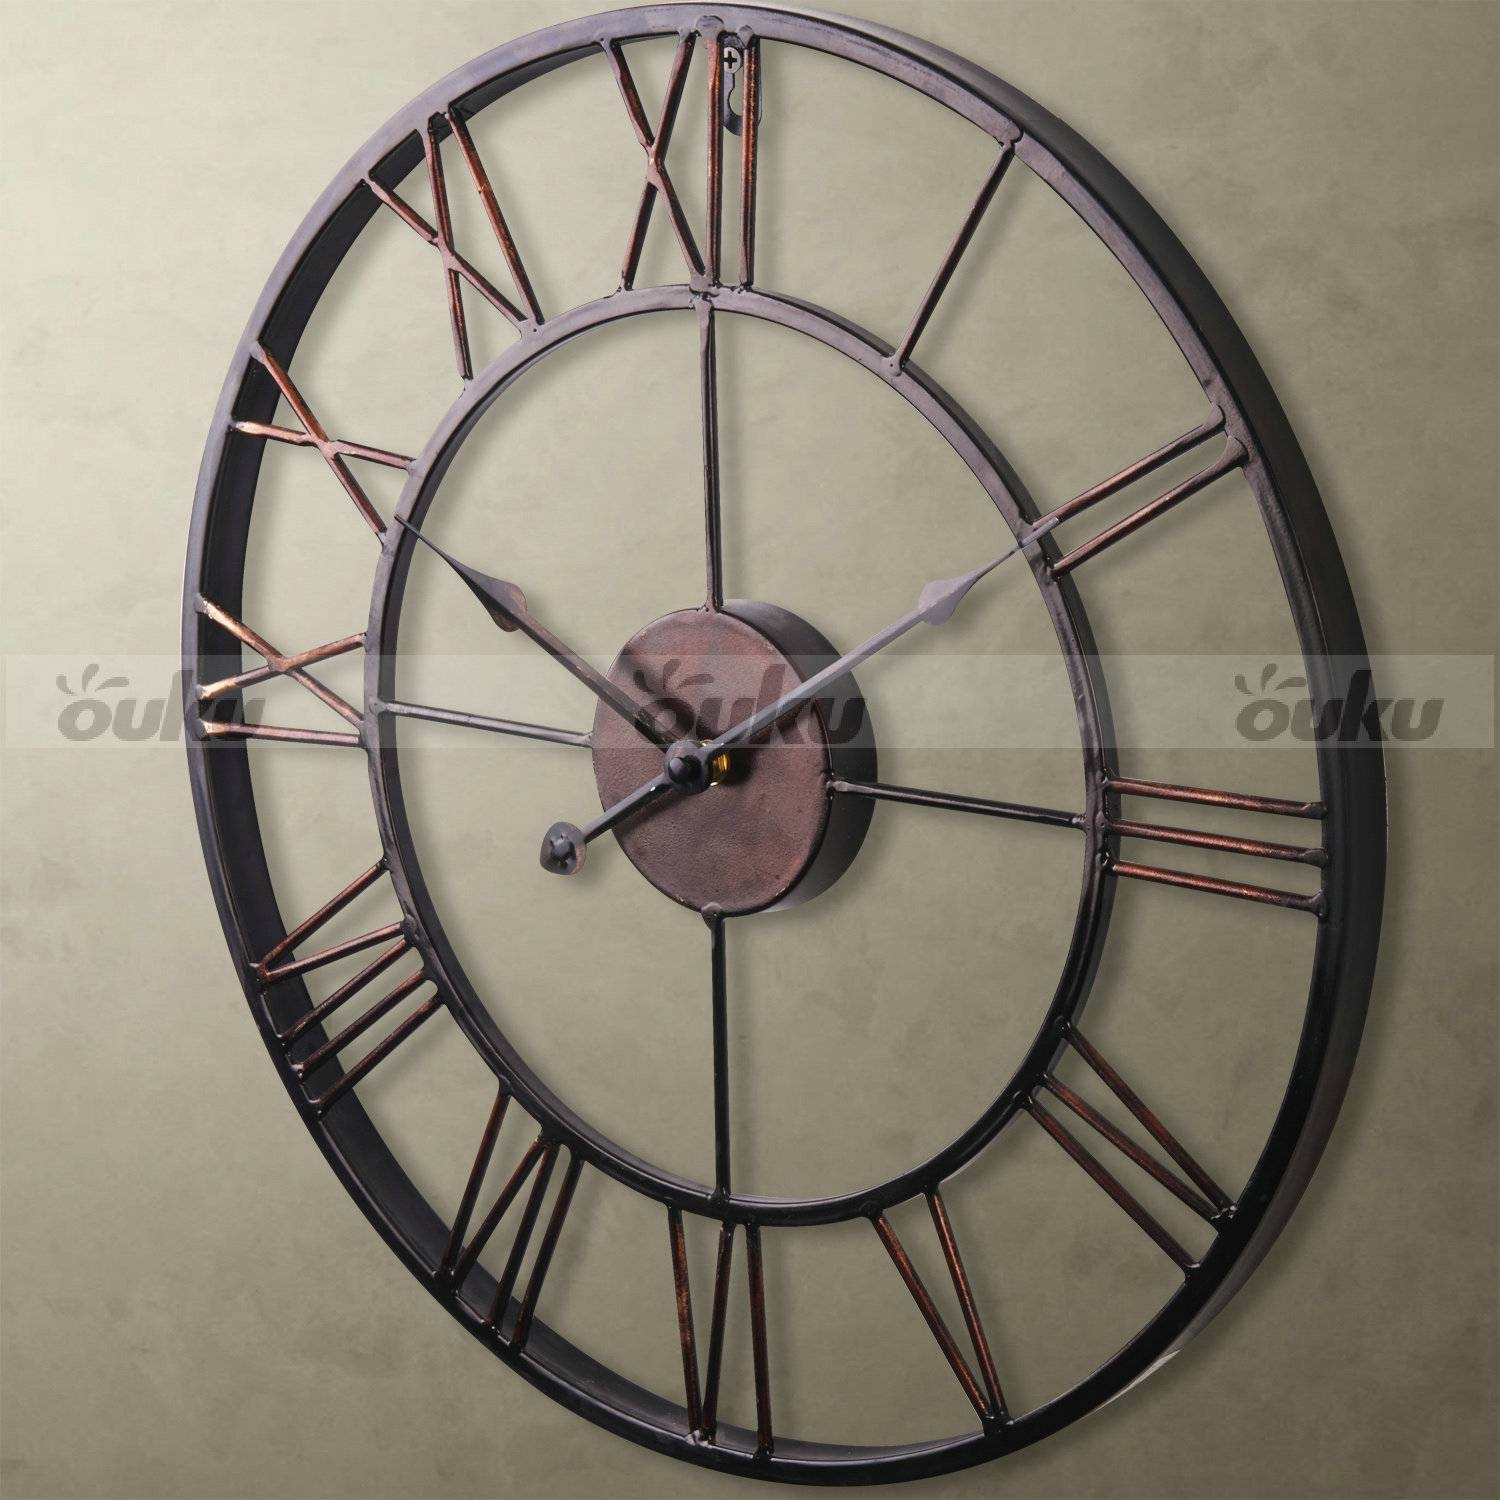 Wall Decor: Metal Wall Clock Images. Design Decor (View 3 of 20)